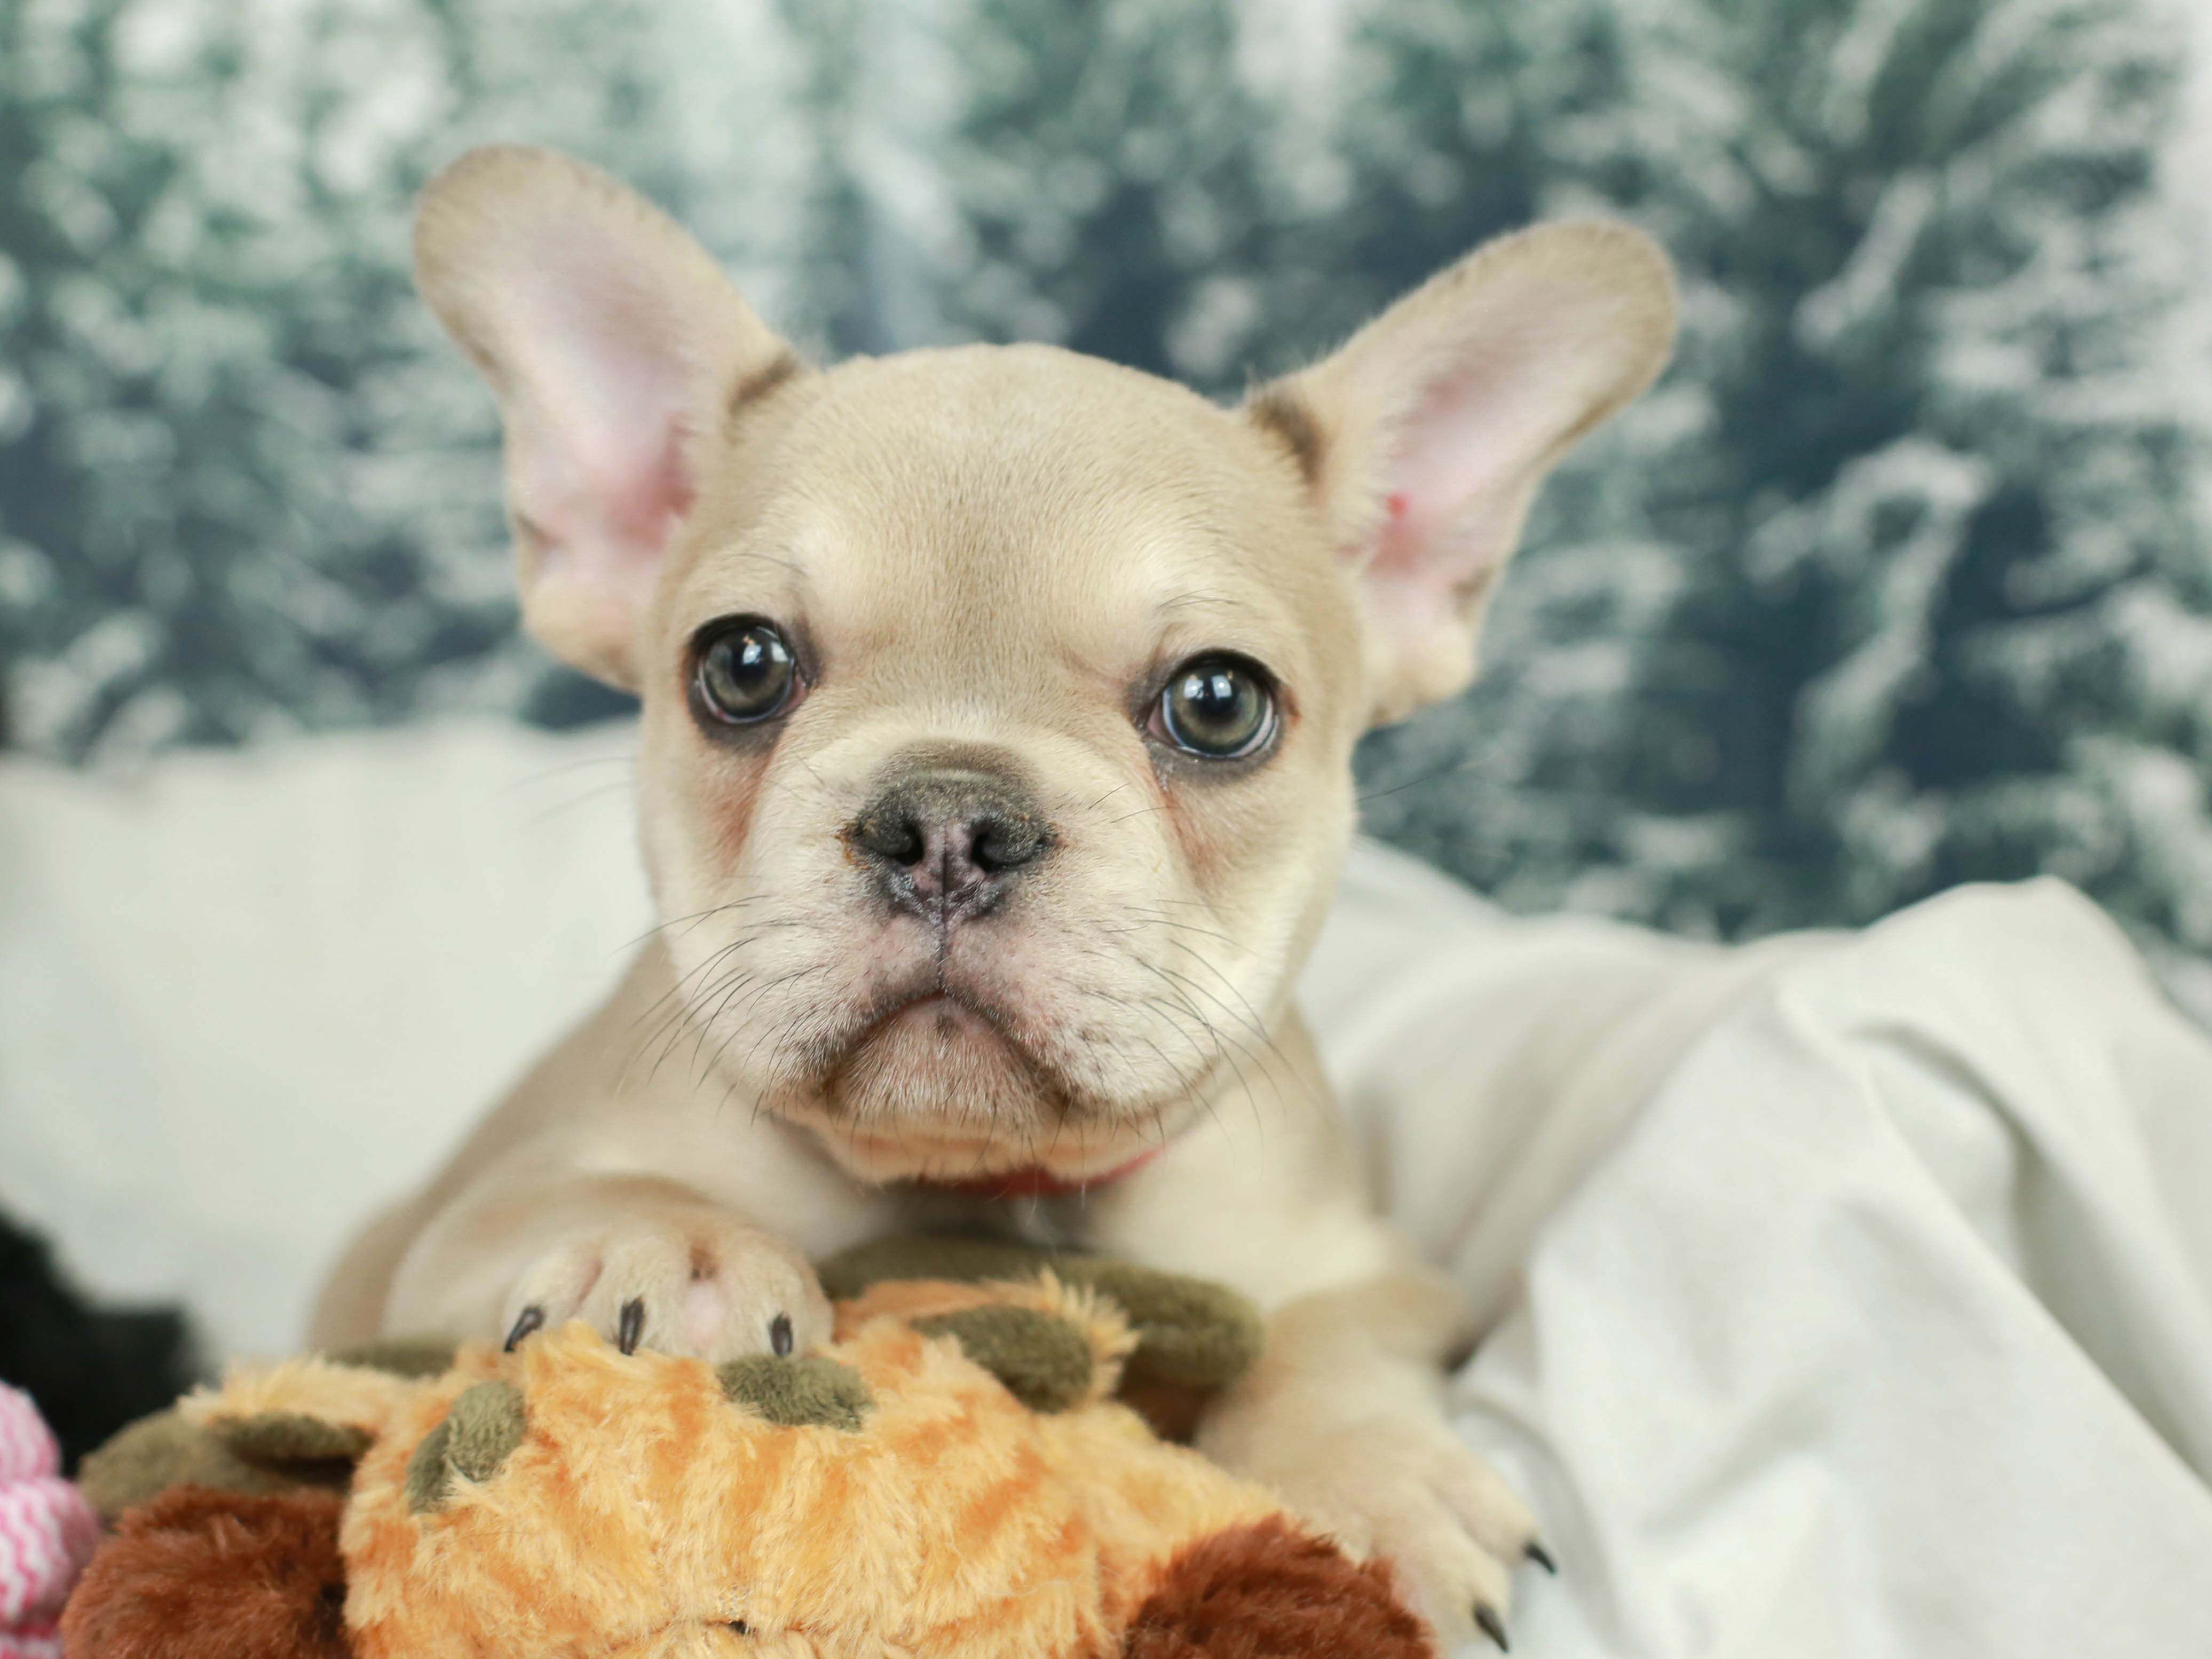 This French Bulldog puppy is super sweet and